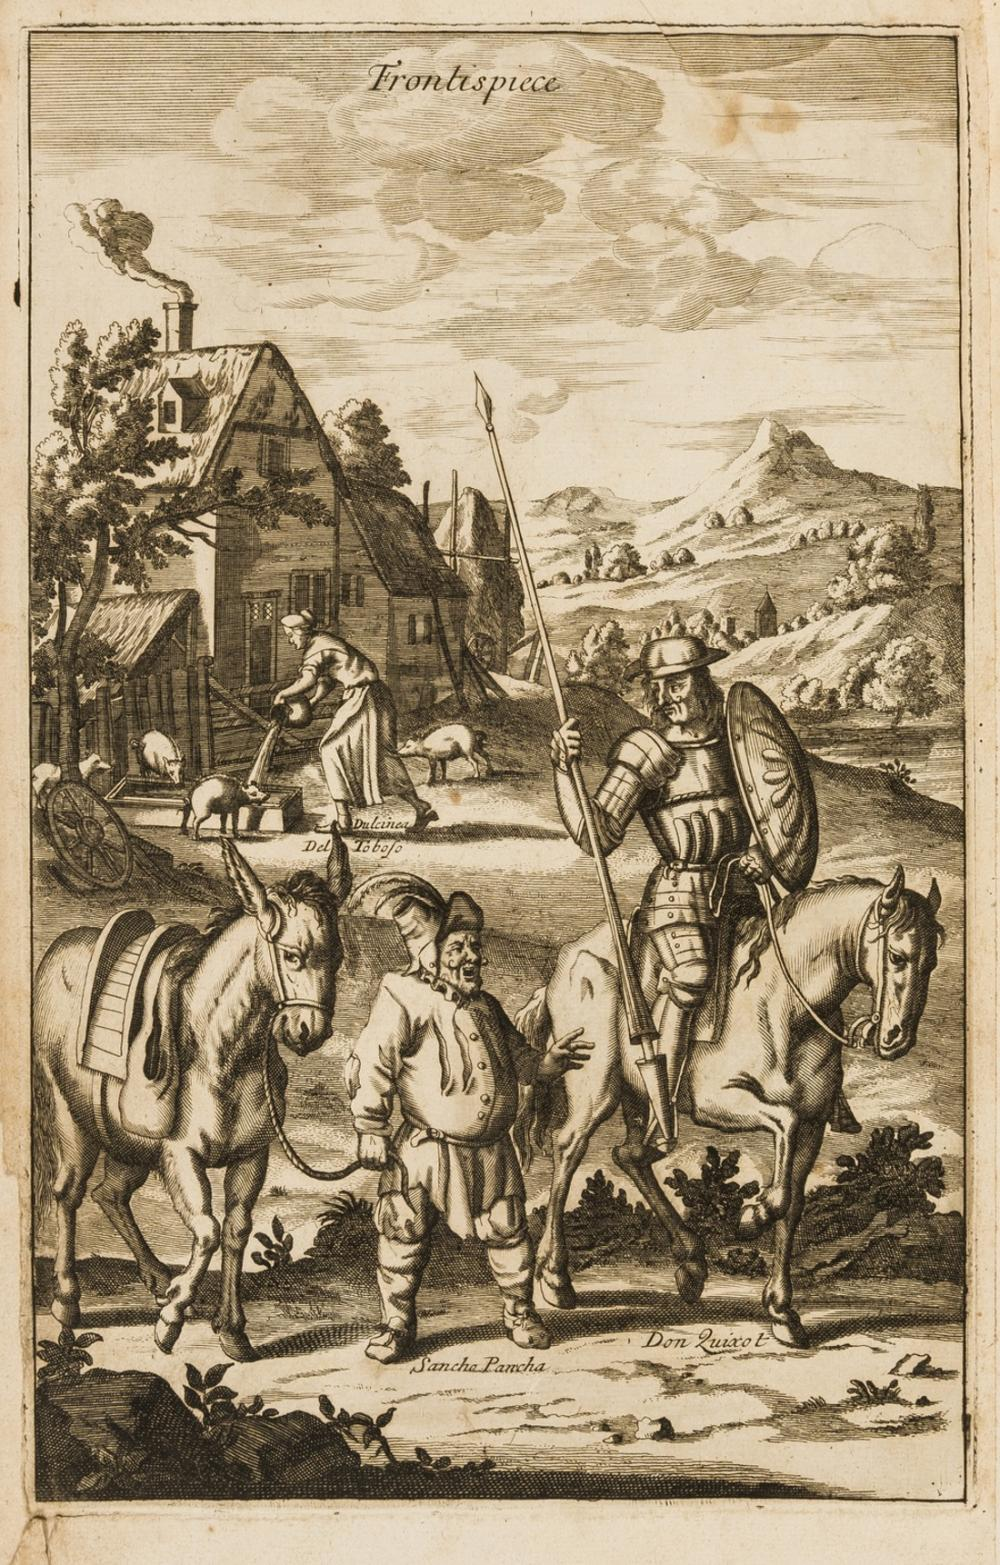 Cervantès Saavedra (Miguel de) The History Of the most Renowned Don Quixote of Mancha, first illustrated edition in English, by Tho. Hodgkin, and are to be sold by John Newton, 1687.